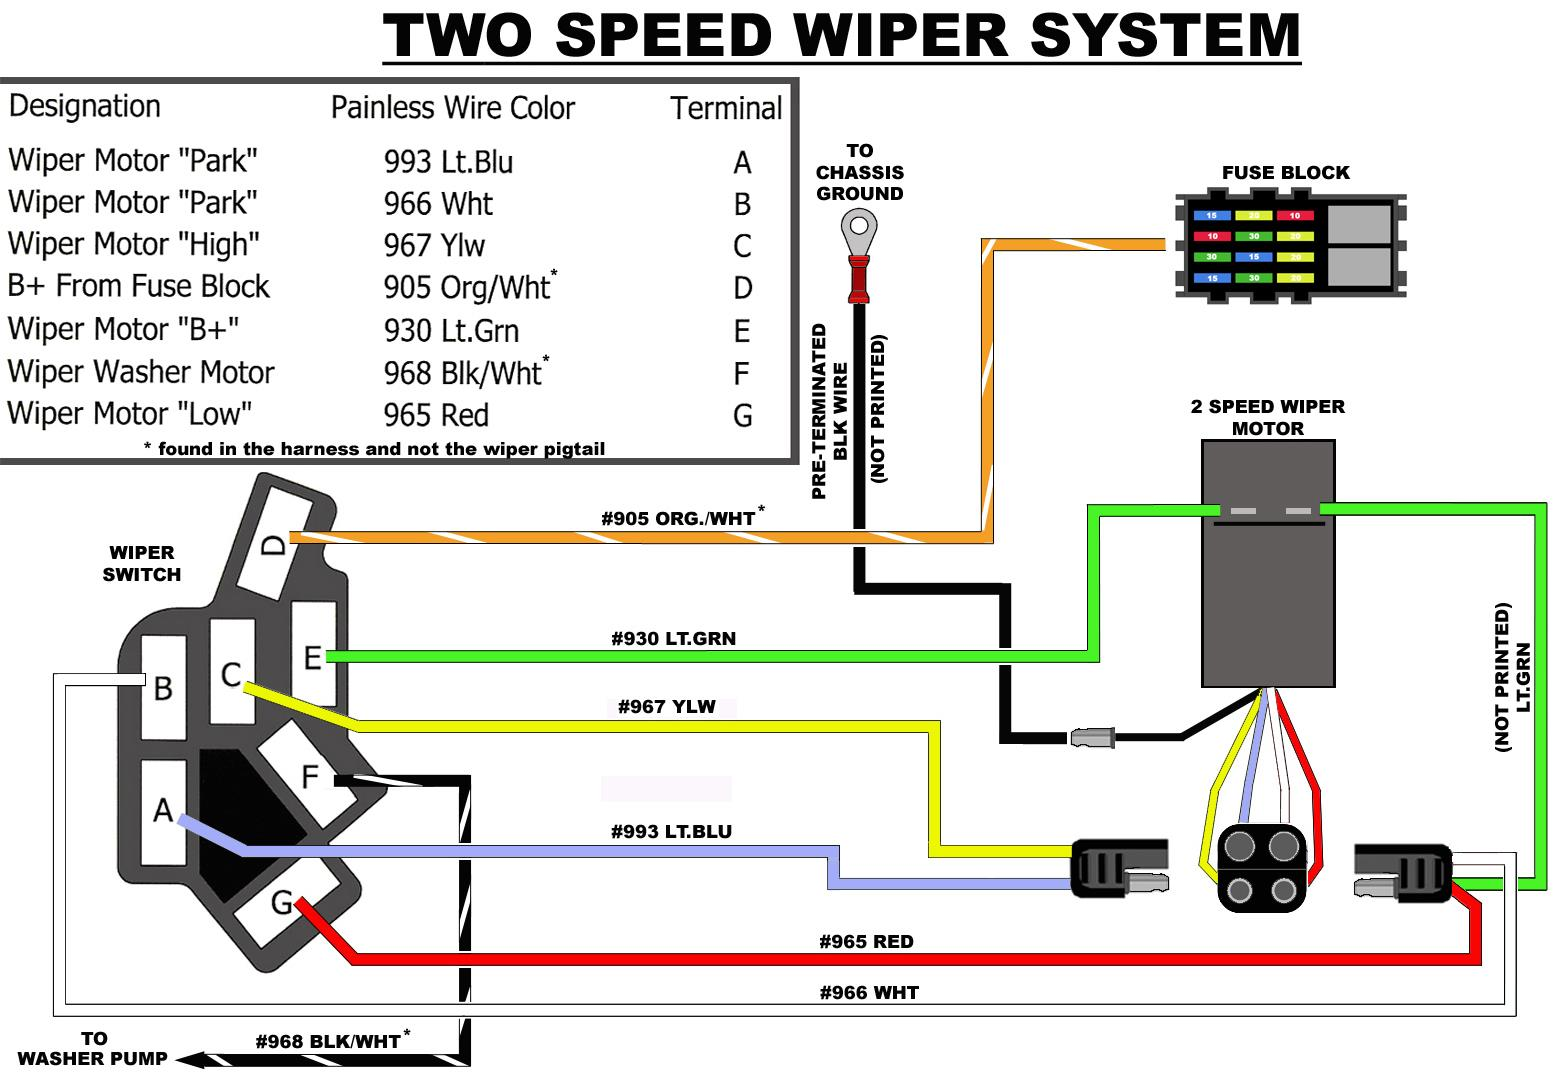 Wire Harness Installation Instructions Pdf Mgb Wiper Switch Wiring Single Speed And Two For